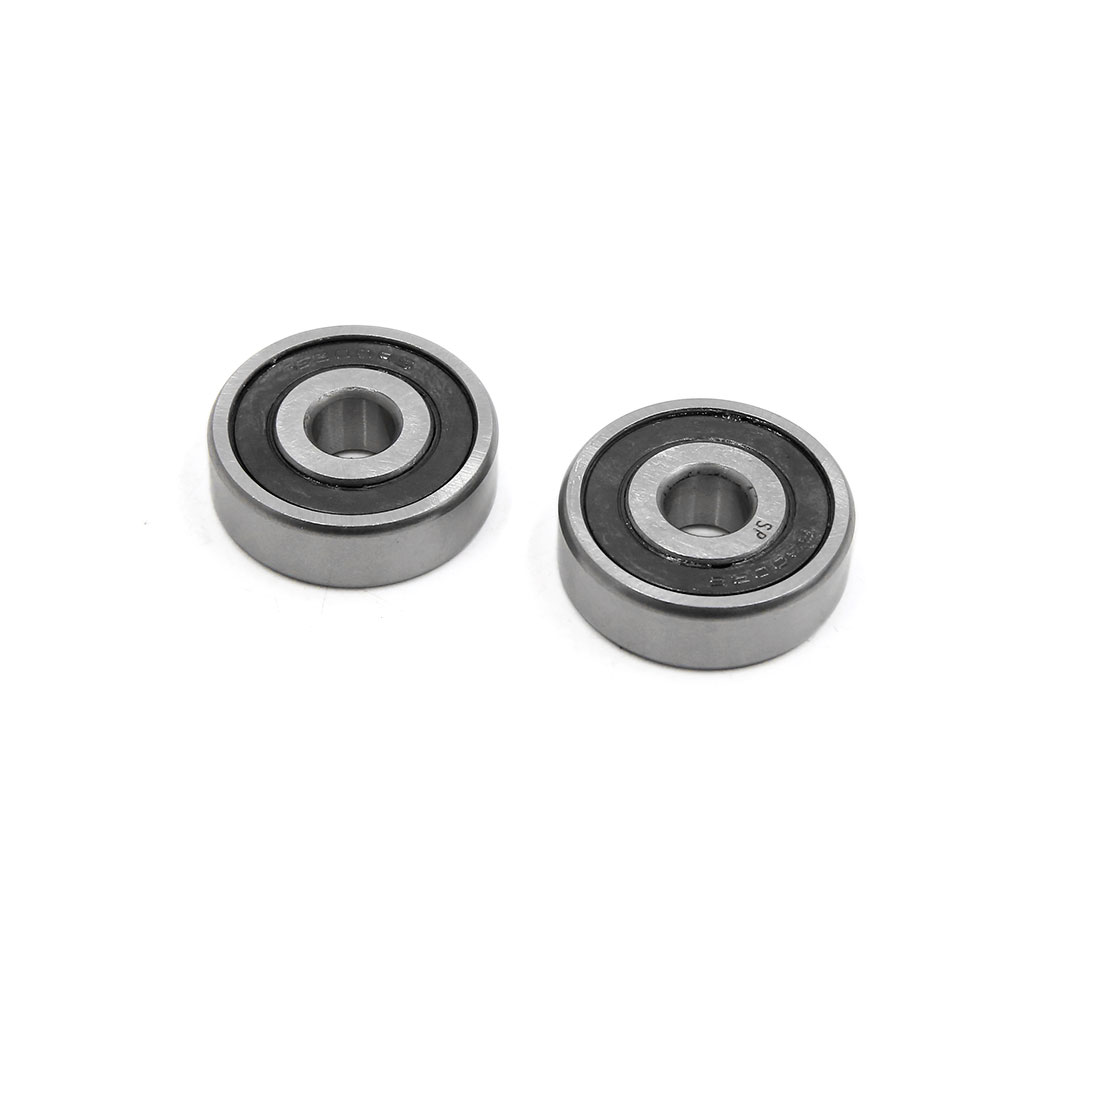 2pcs 6300-2RS Scooter Motorcycle Sealed Deep Groove Ball Bearing 35 x 10 x 11mm